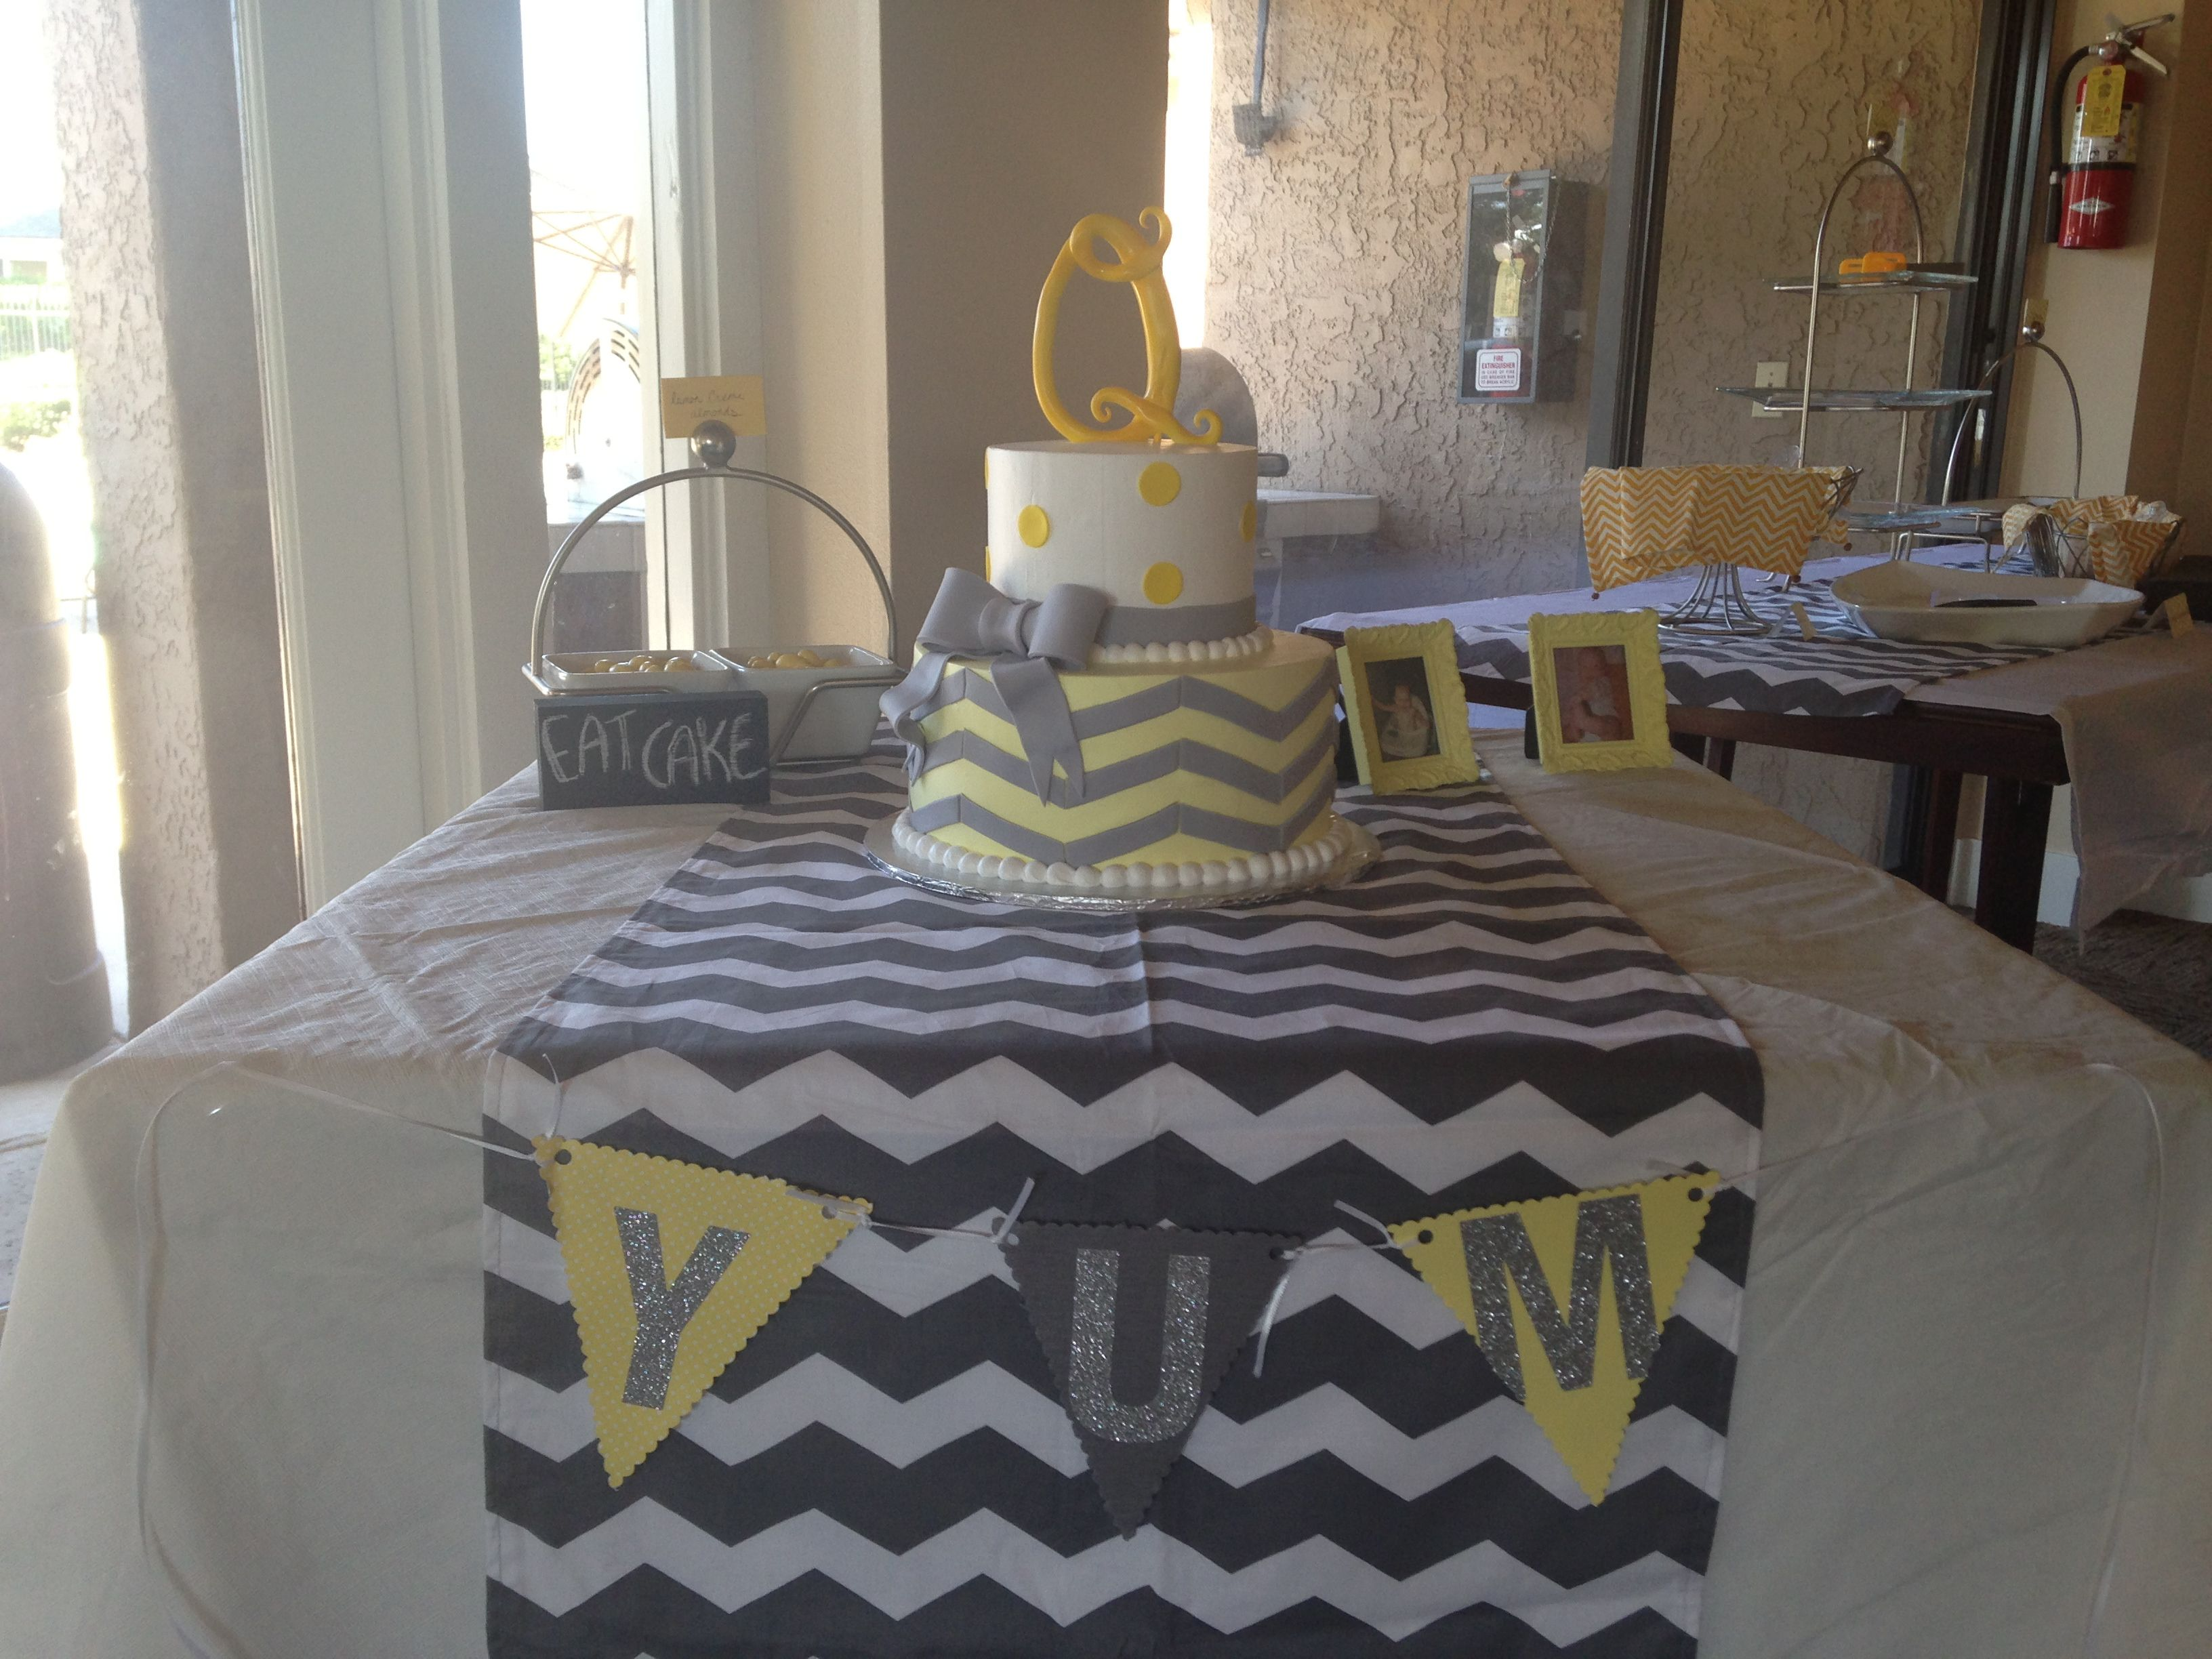 Babyshower · Love The Chevron Runner. Would Look So Pretty On A White Table  Cloth With Some